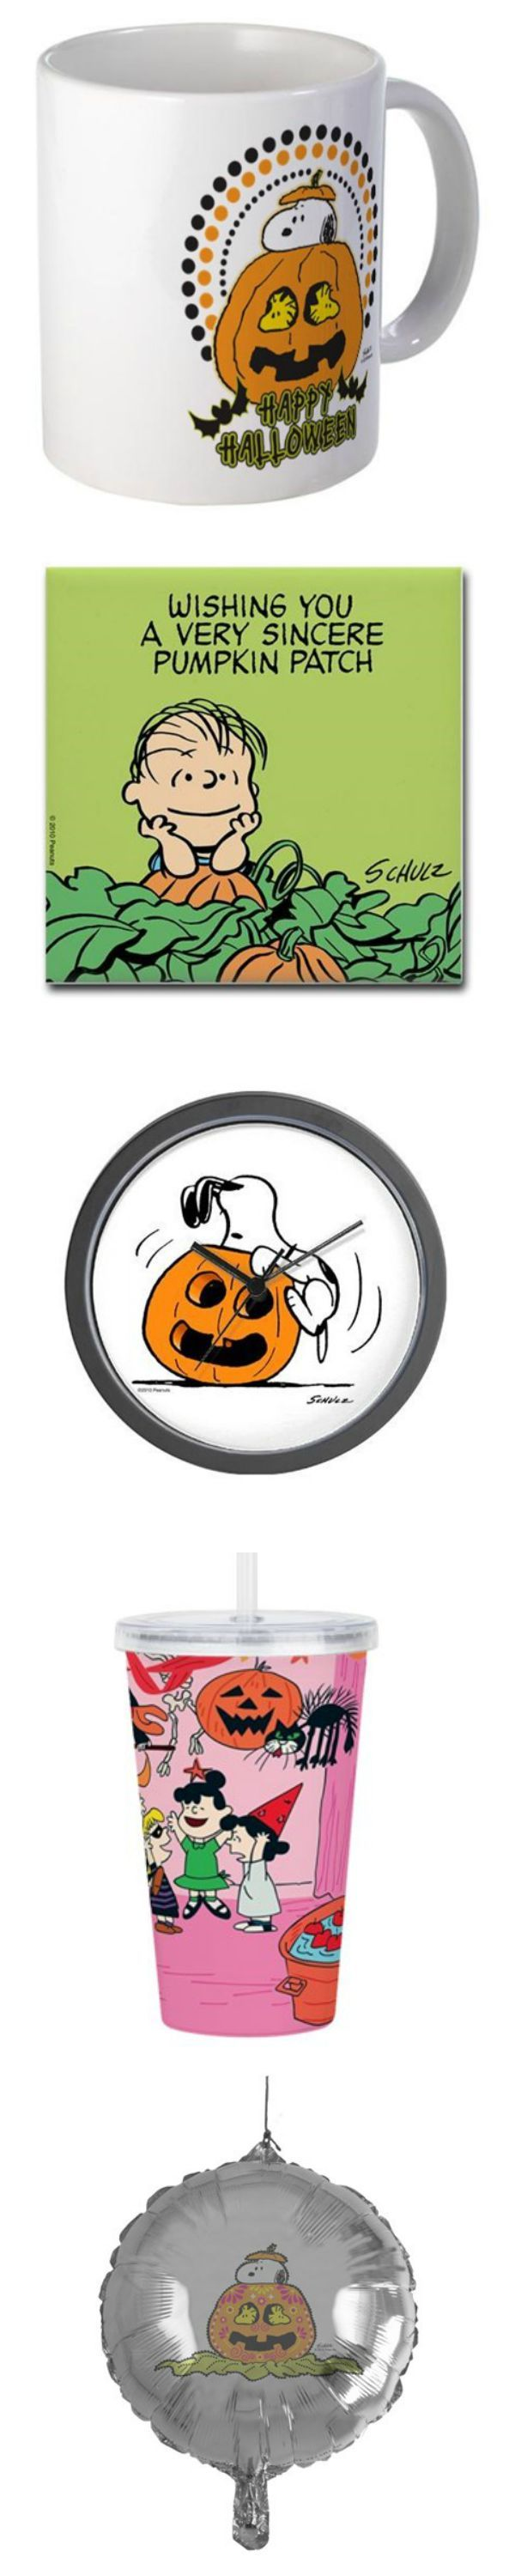 The Great Pumpkin is coming! Decorate your patch with Peanuts Halloween decor and more from CafePress. Visit CollectPeanuts.com to start shopping and support our site.